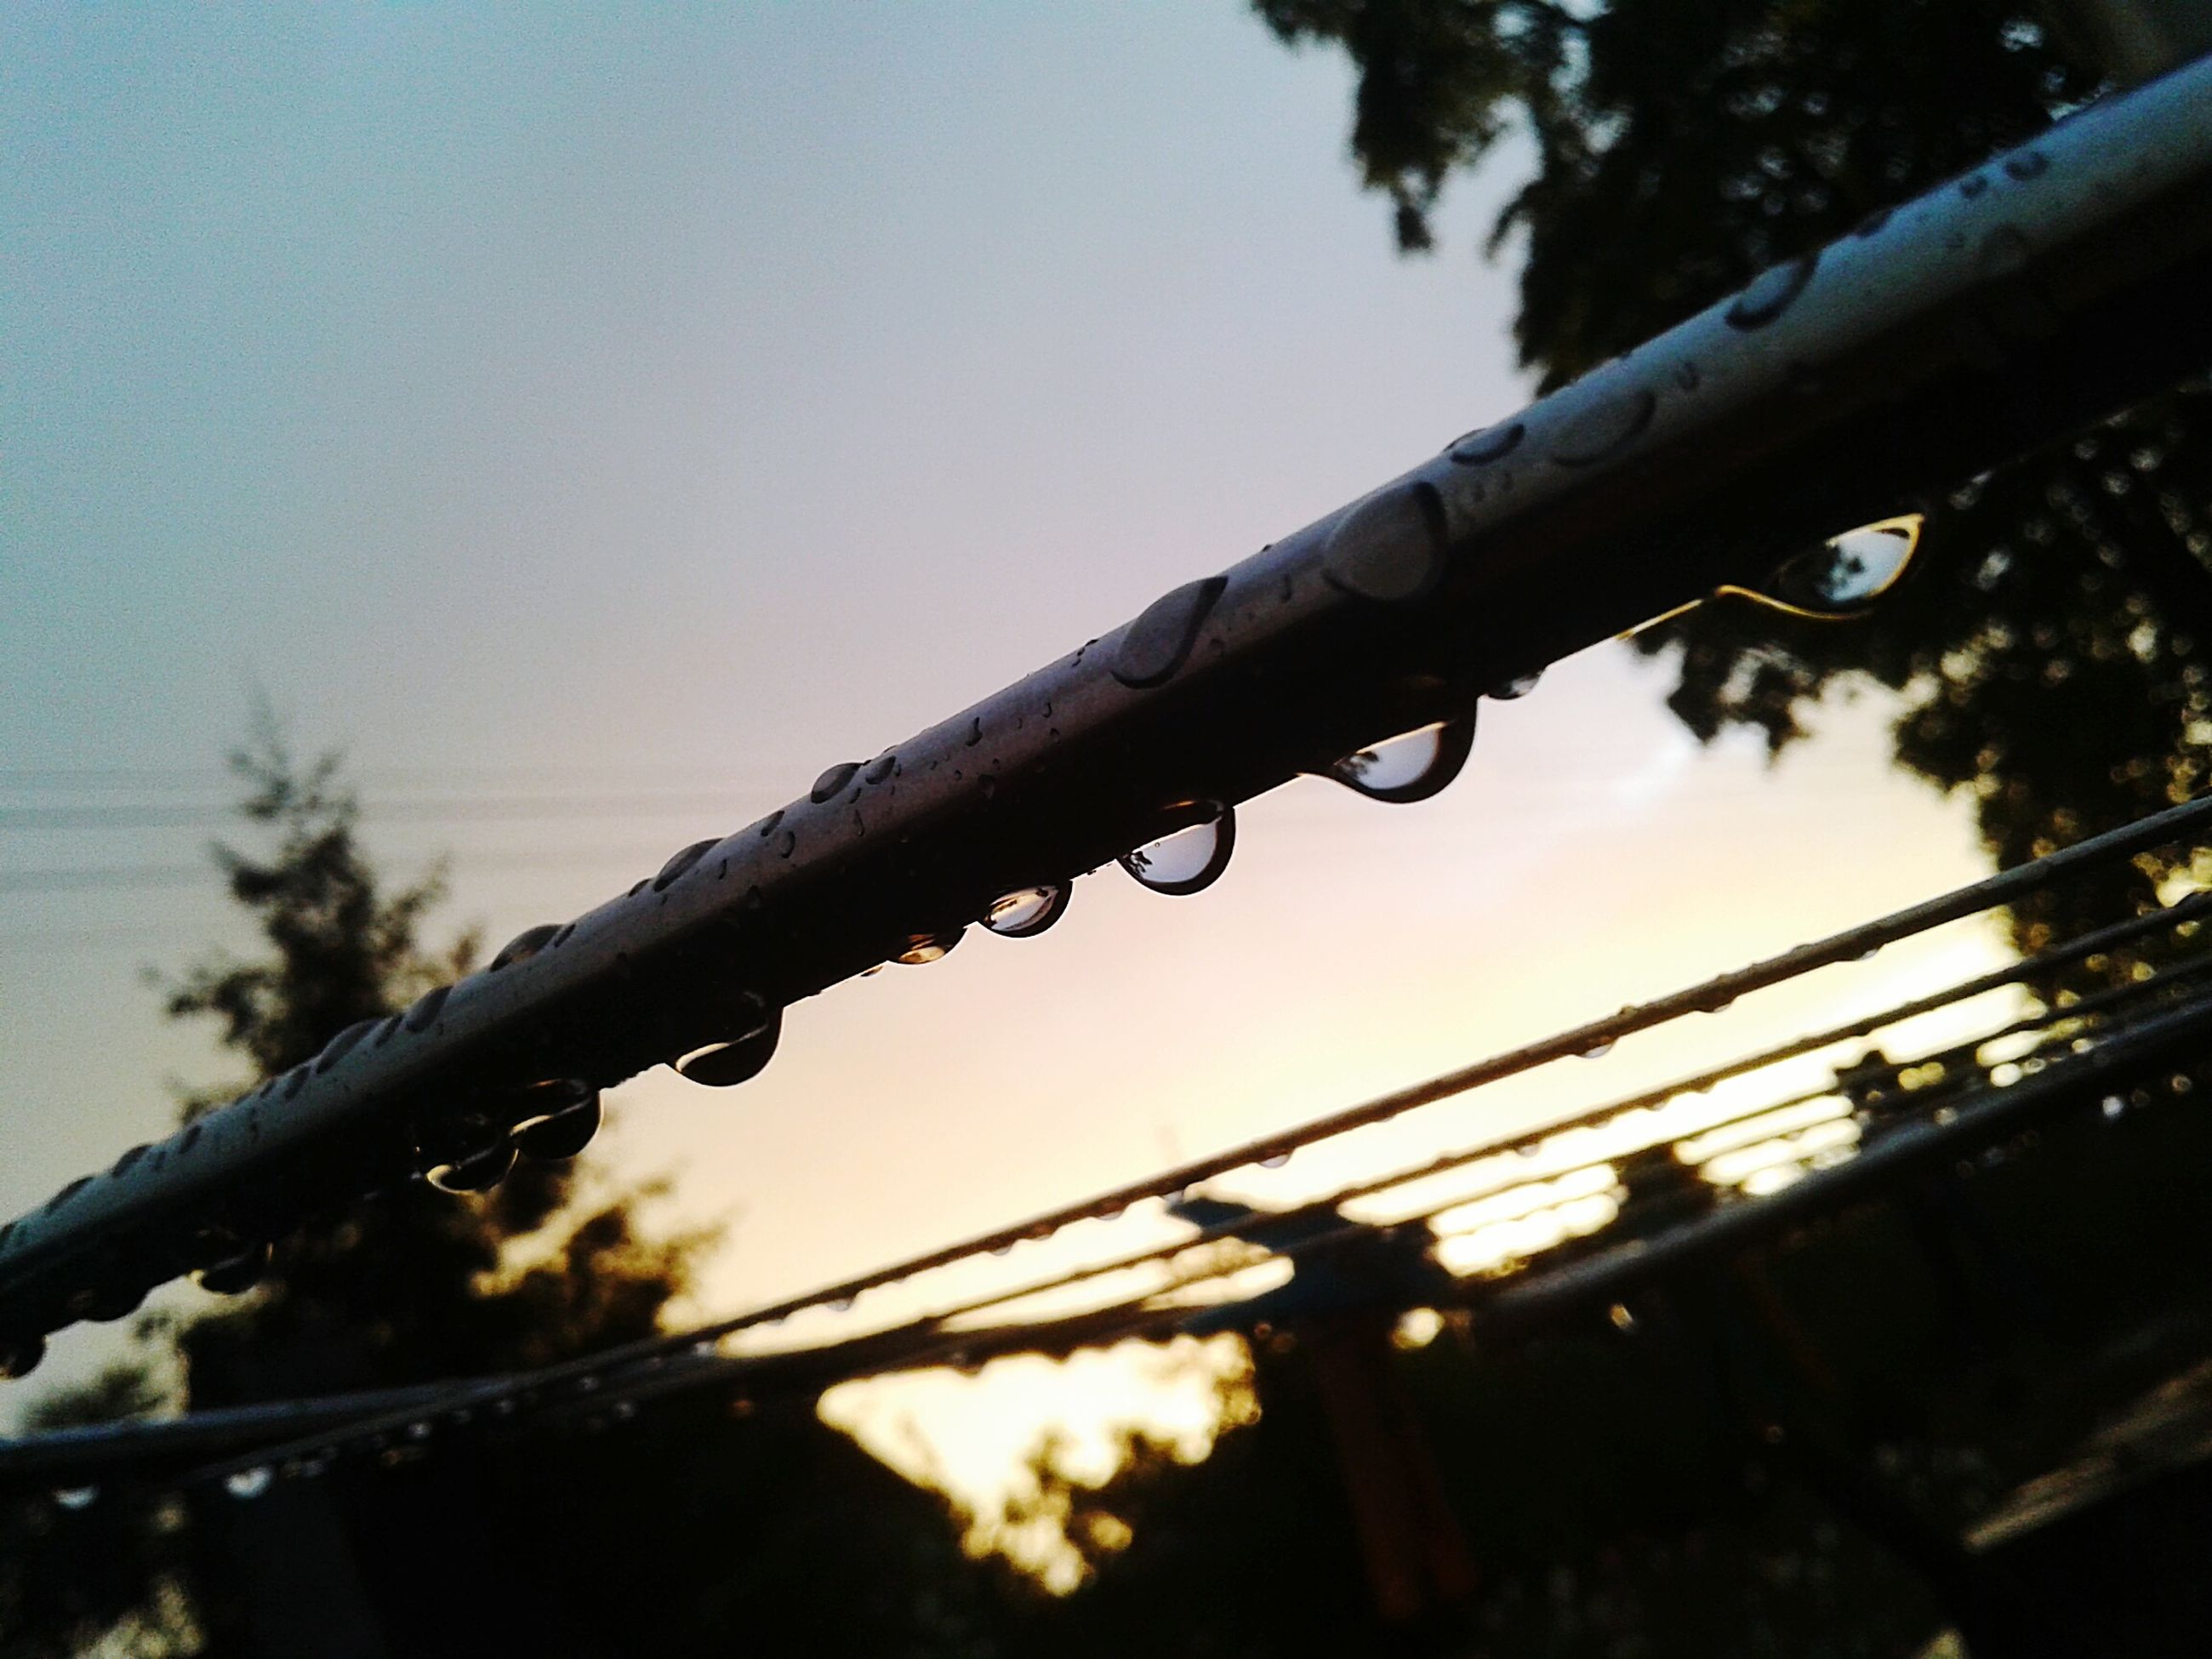 focus on foreground, low angle view, close-up, silhouette, branch, sky, clear sky, nature, tree, selective focus, dusk, metal, outdoors, no people, protection, twig, fence, day, barbed wire, growth